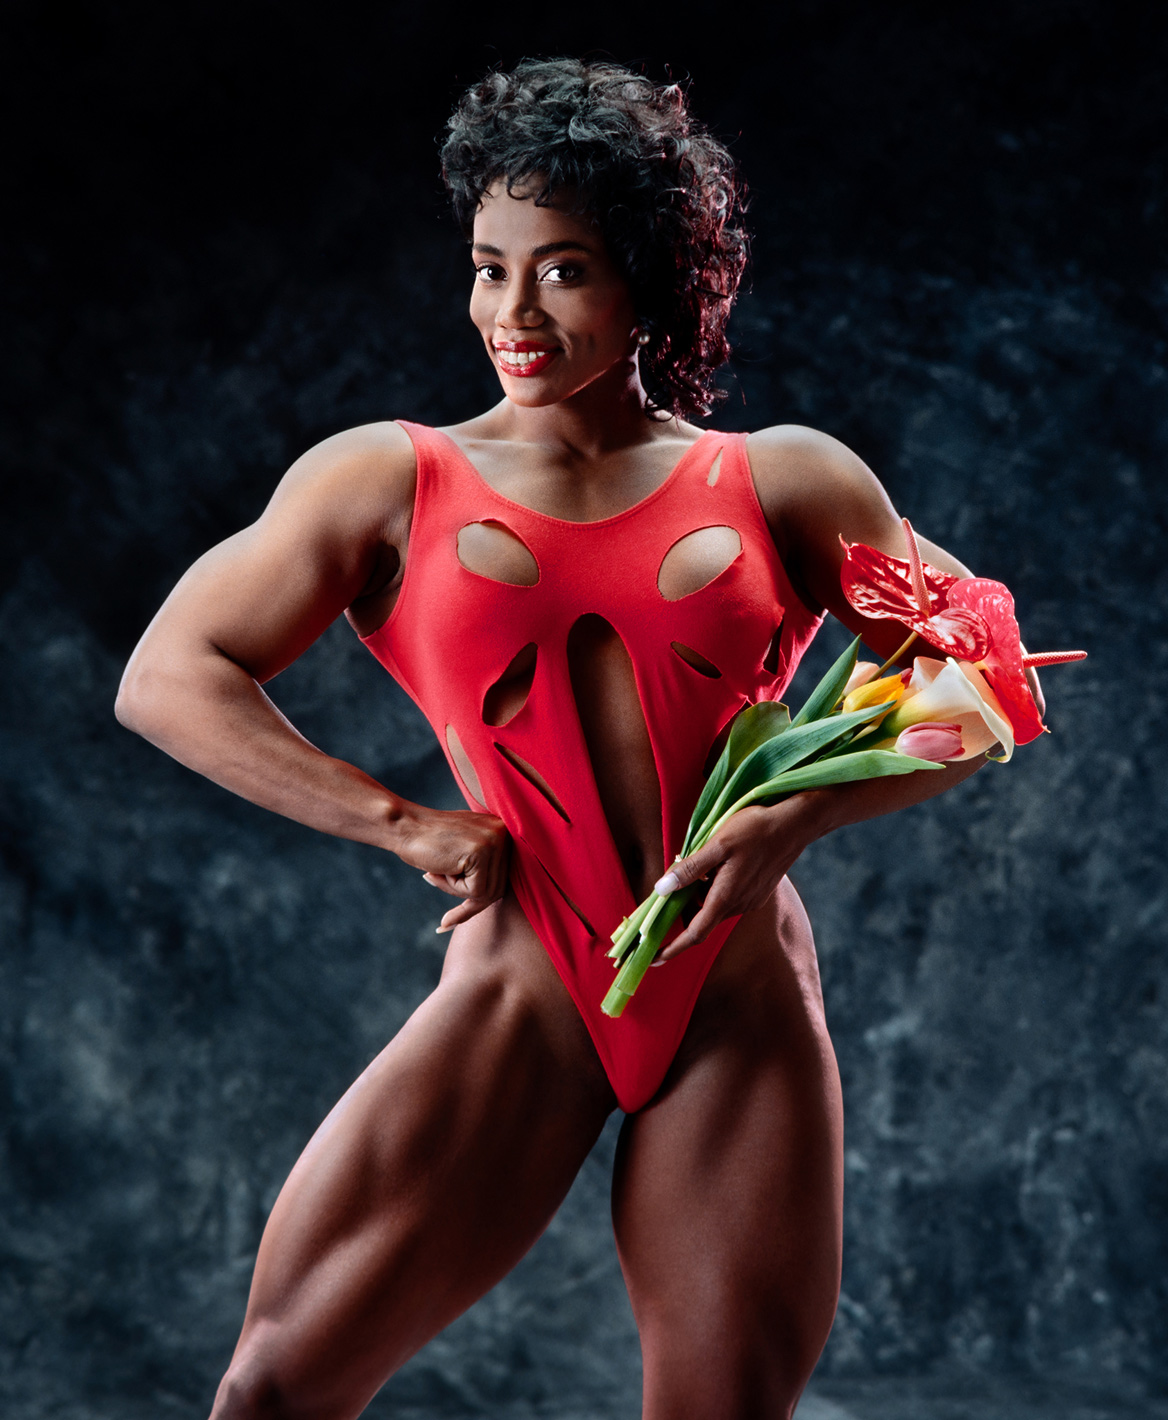 Lenda Murray Ms. Olympia